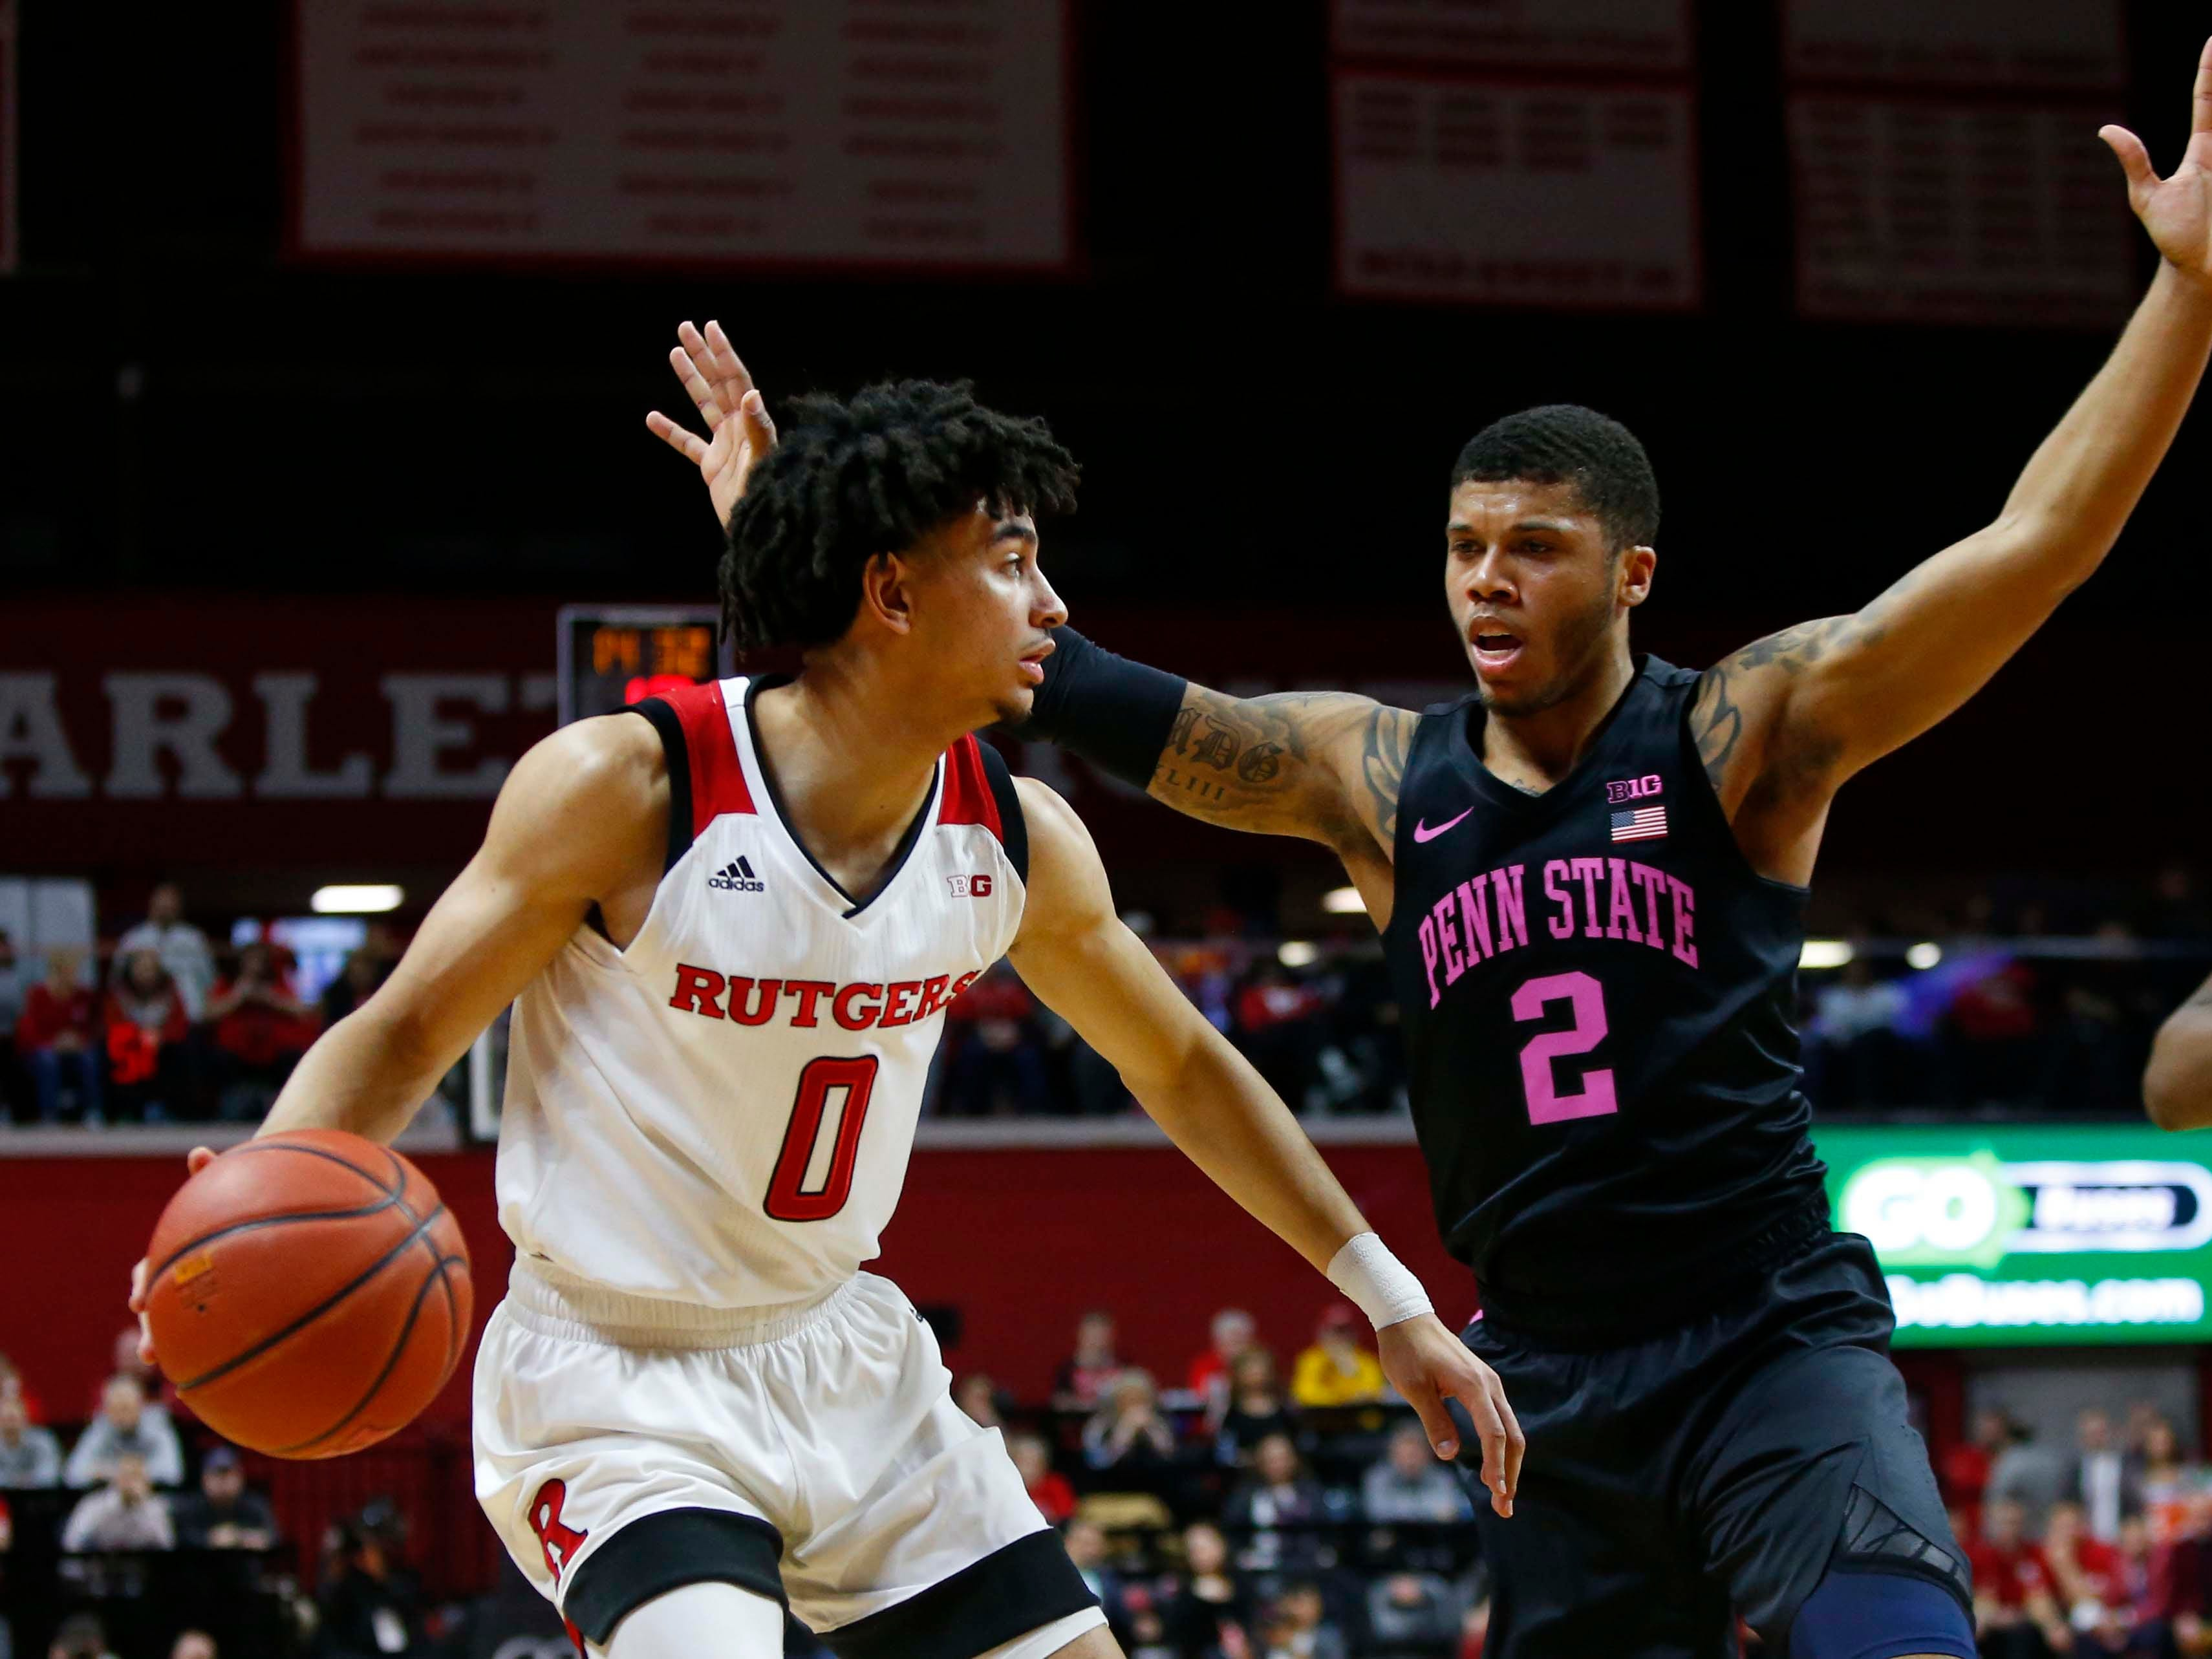 Rutgers basketball: Scarlet Knights comeback fails against Penn State